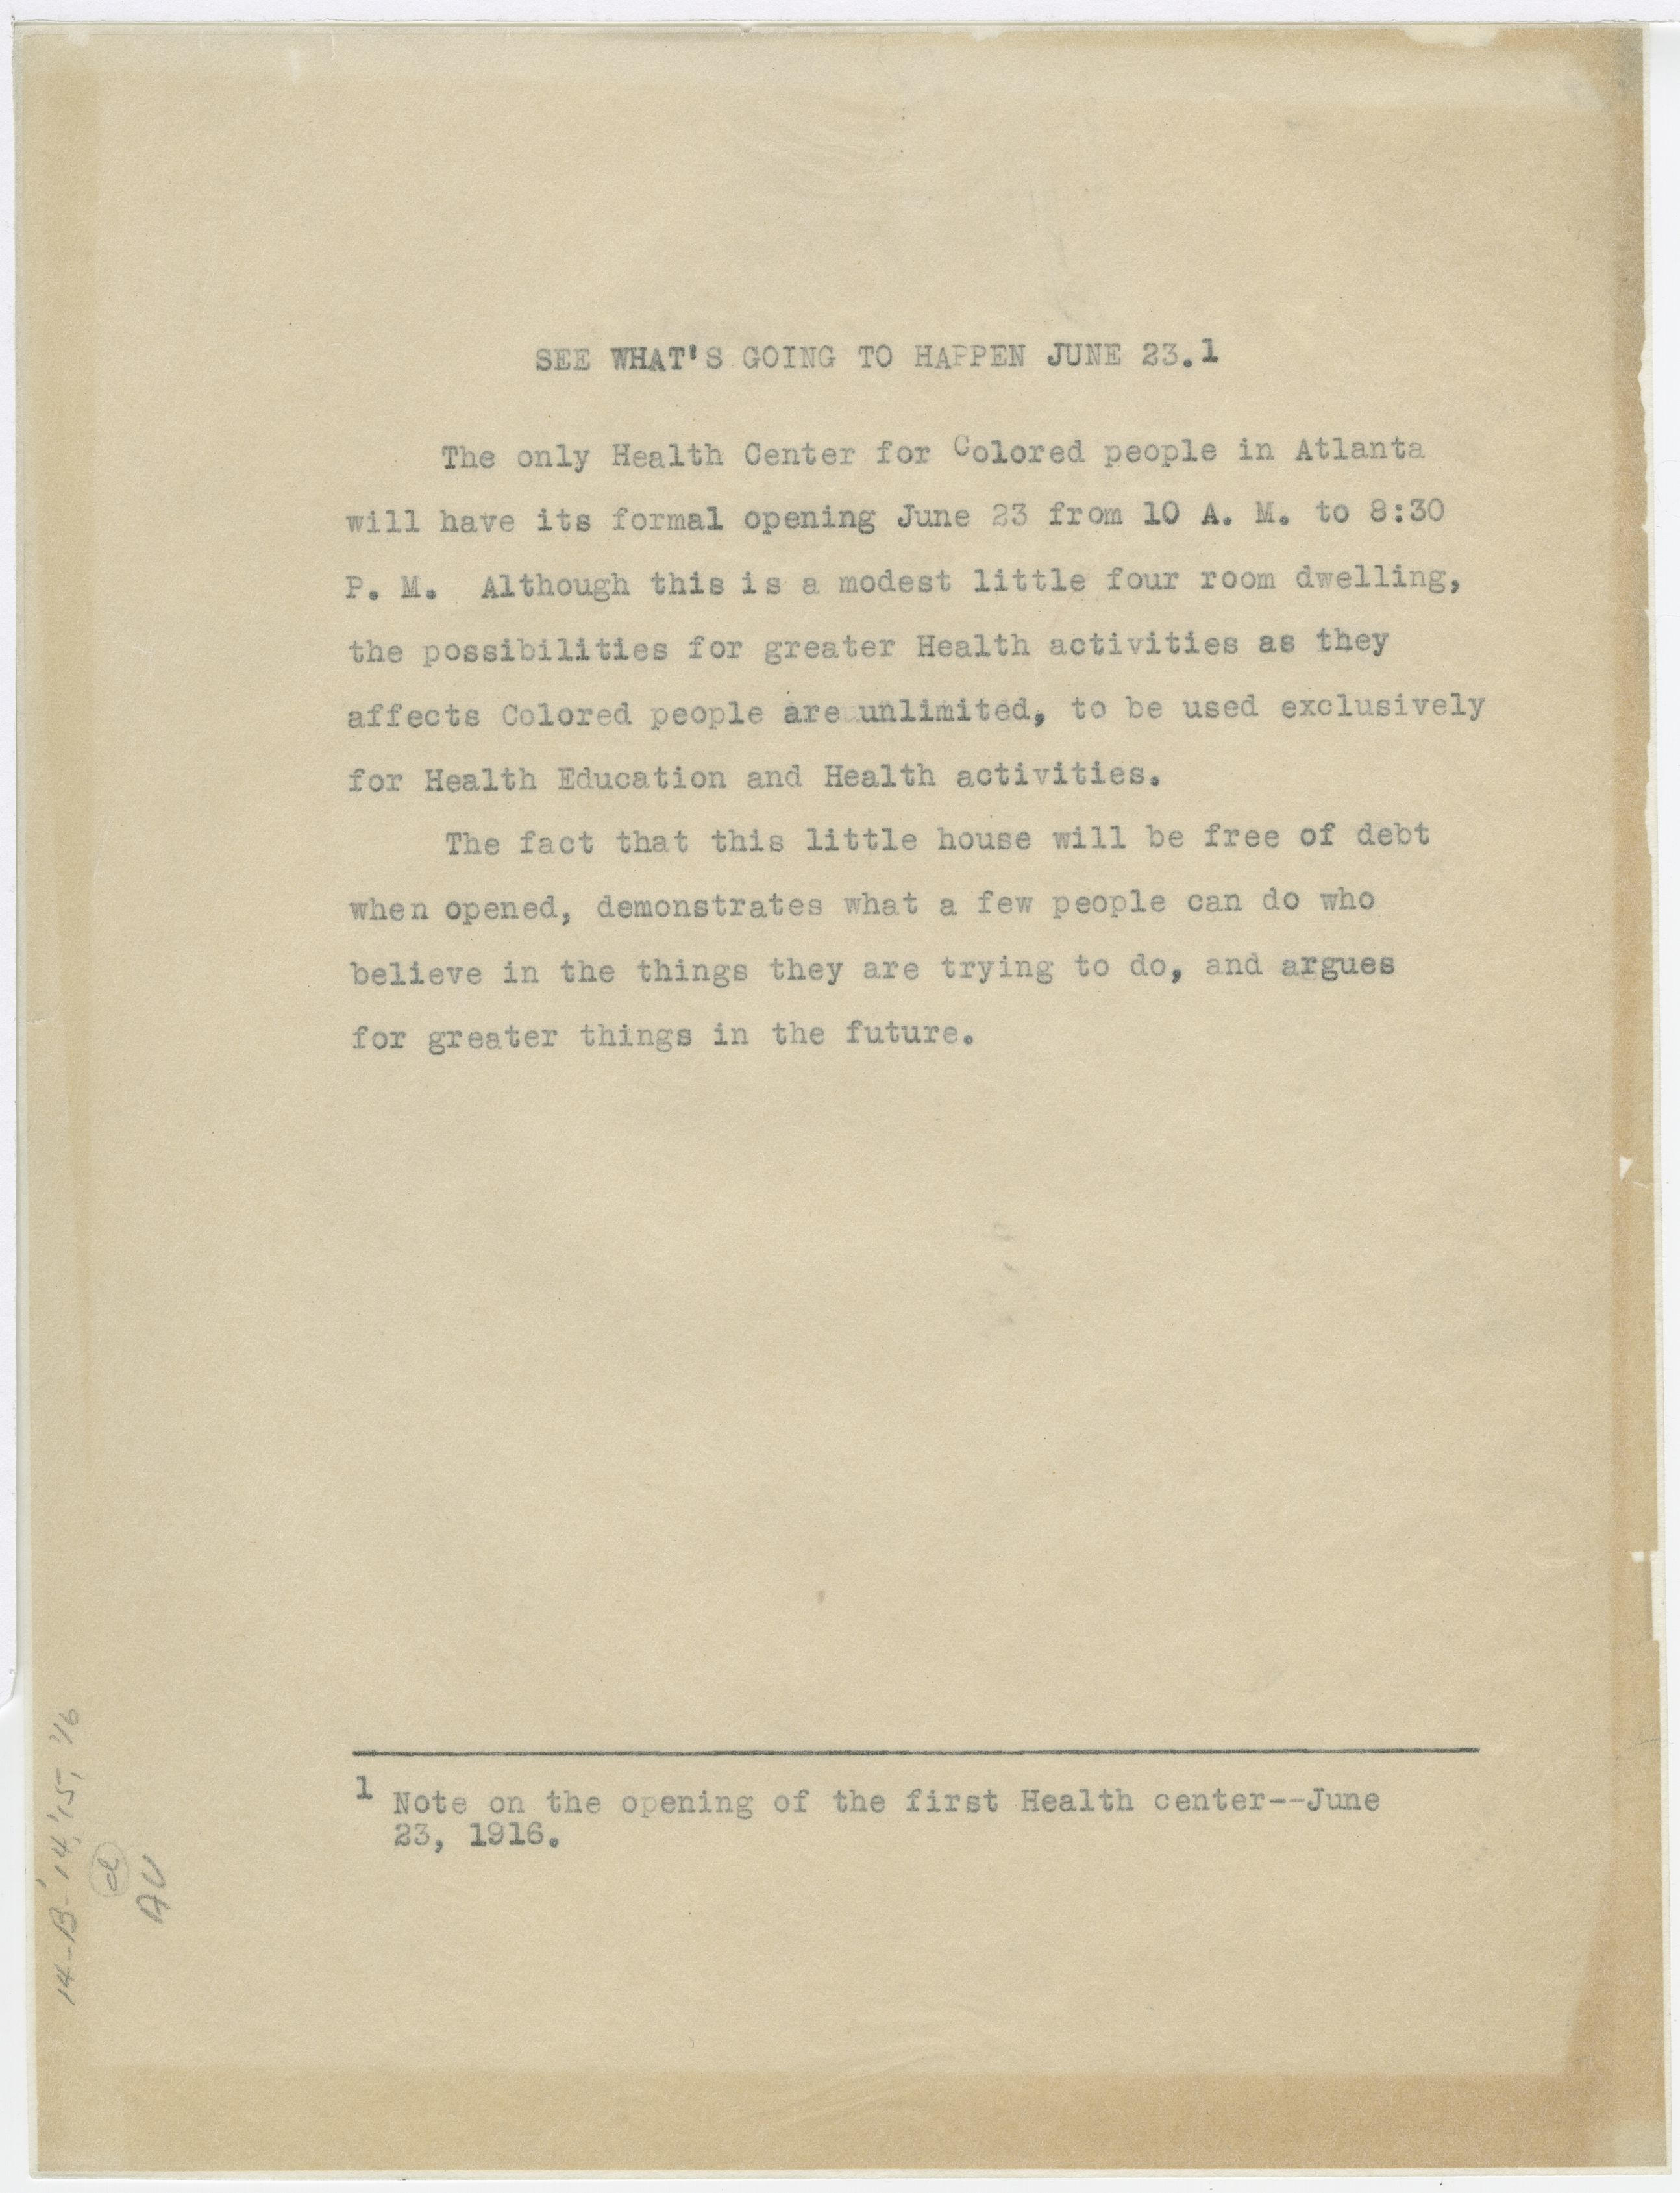 Note on the Opening of the First Health Center